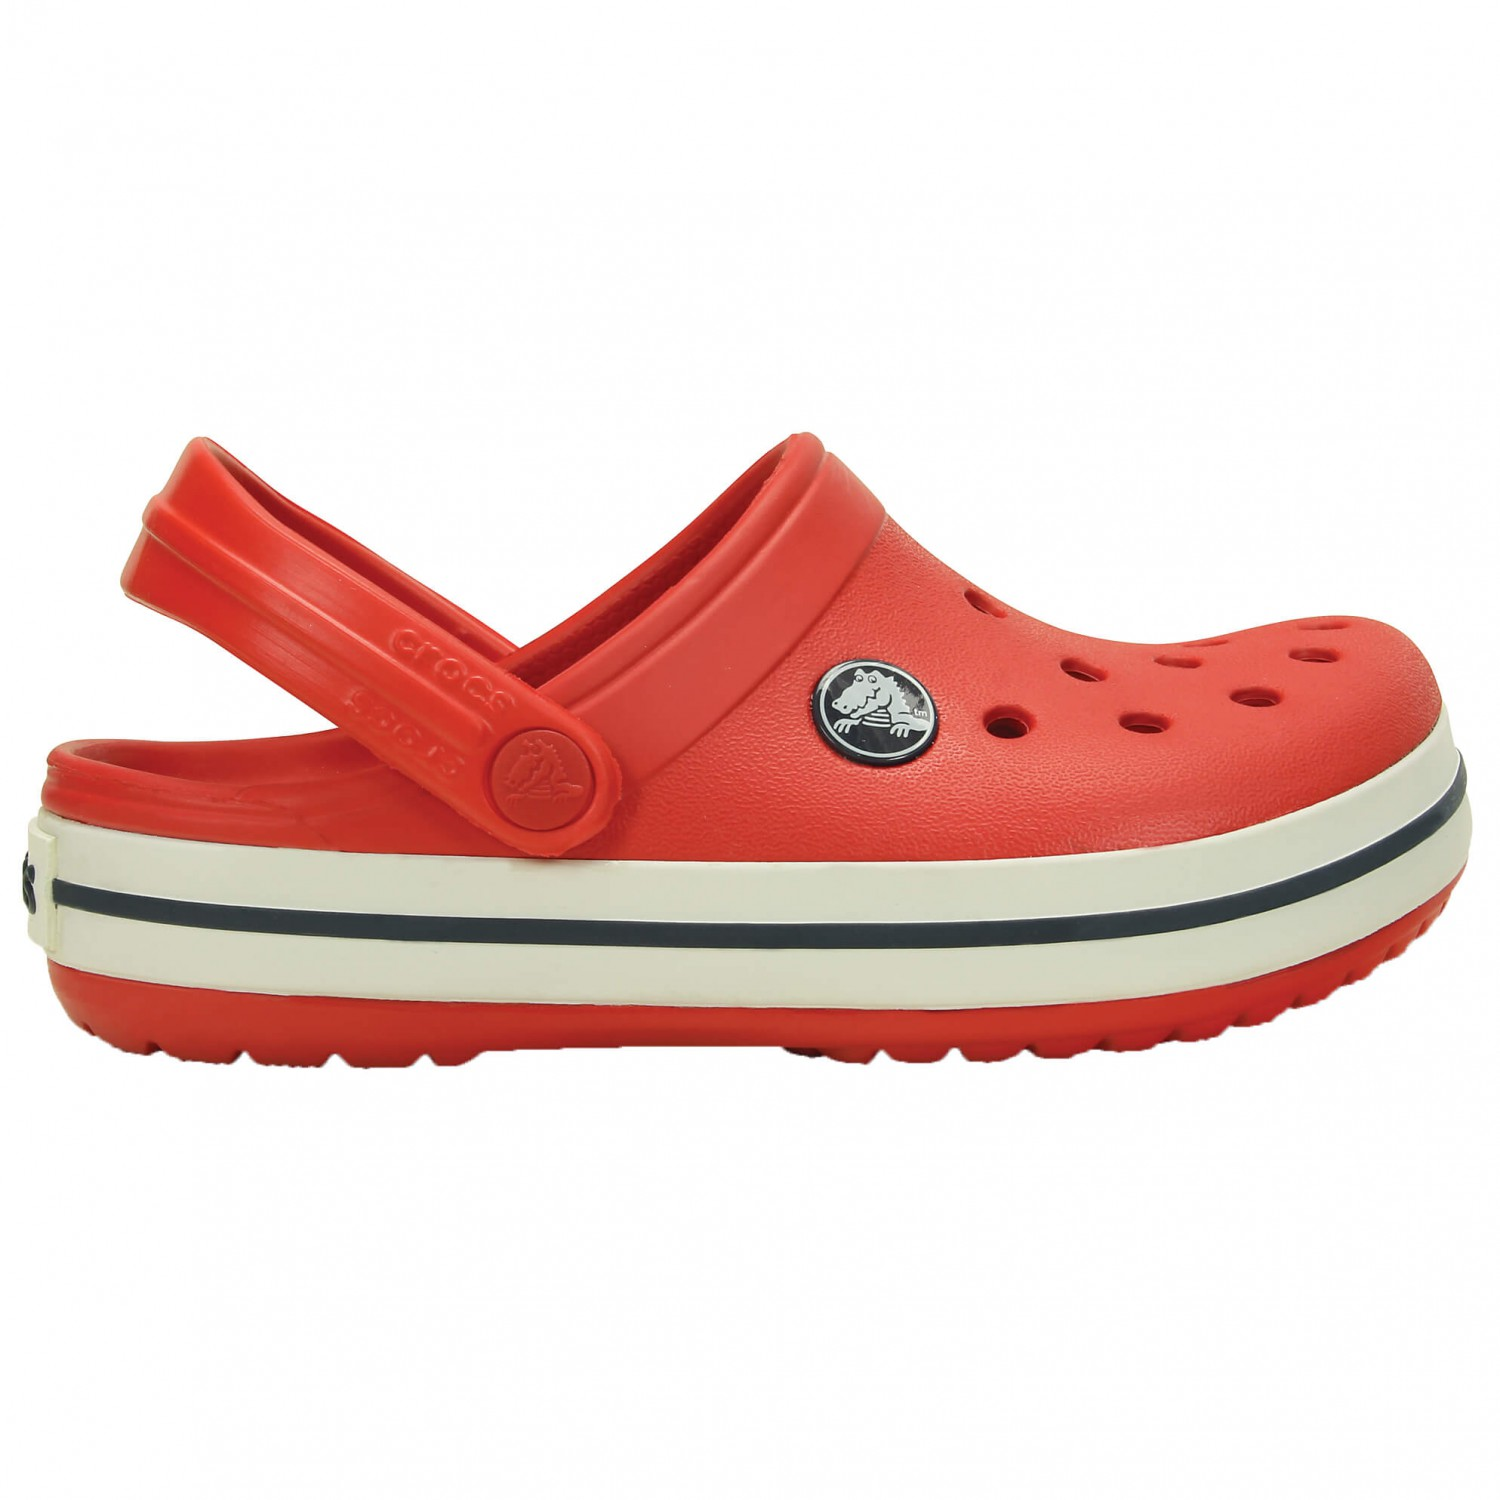 Buy Kids Crocs online at best price in India on Snadeal. Shop online for Kids Crocs and get best discounts. Avail Free Shipping & CoD options across India/5(2).